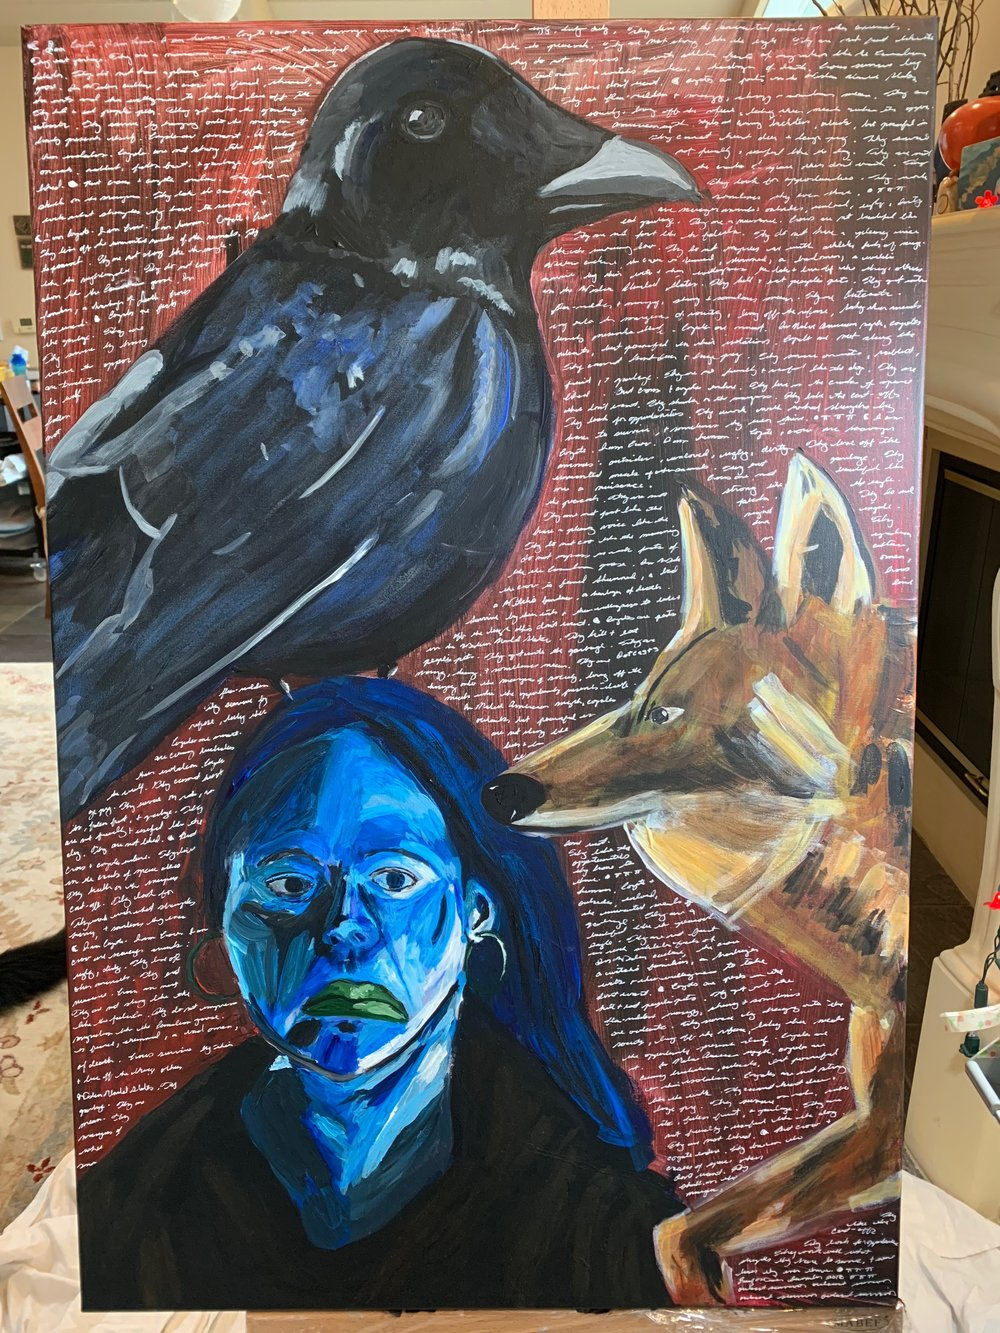 Self-Portrait - Coyote, Crow, and Woman. Acrylic on Canvas. 24x36. 2018